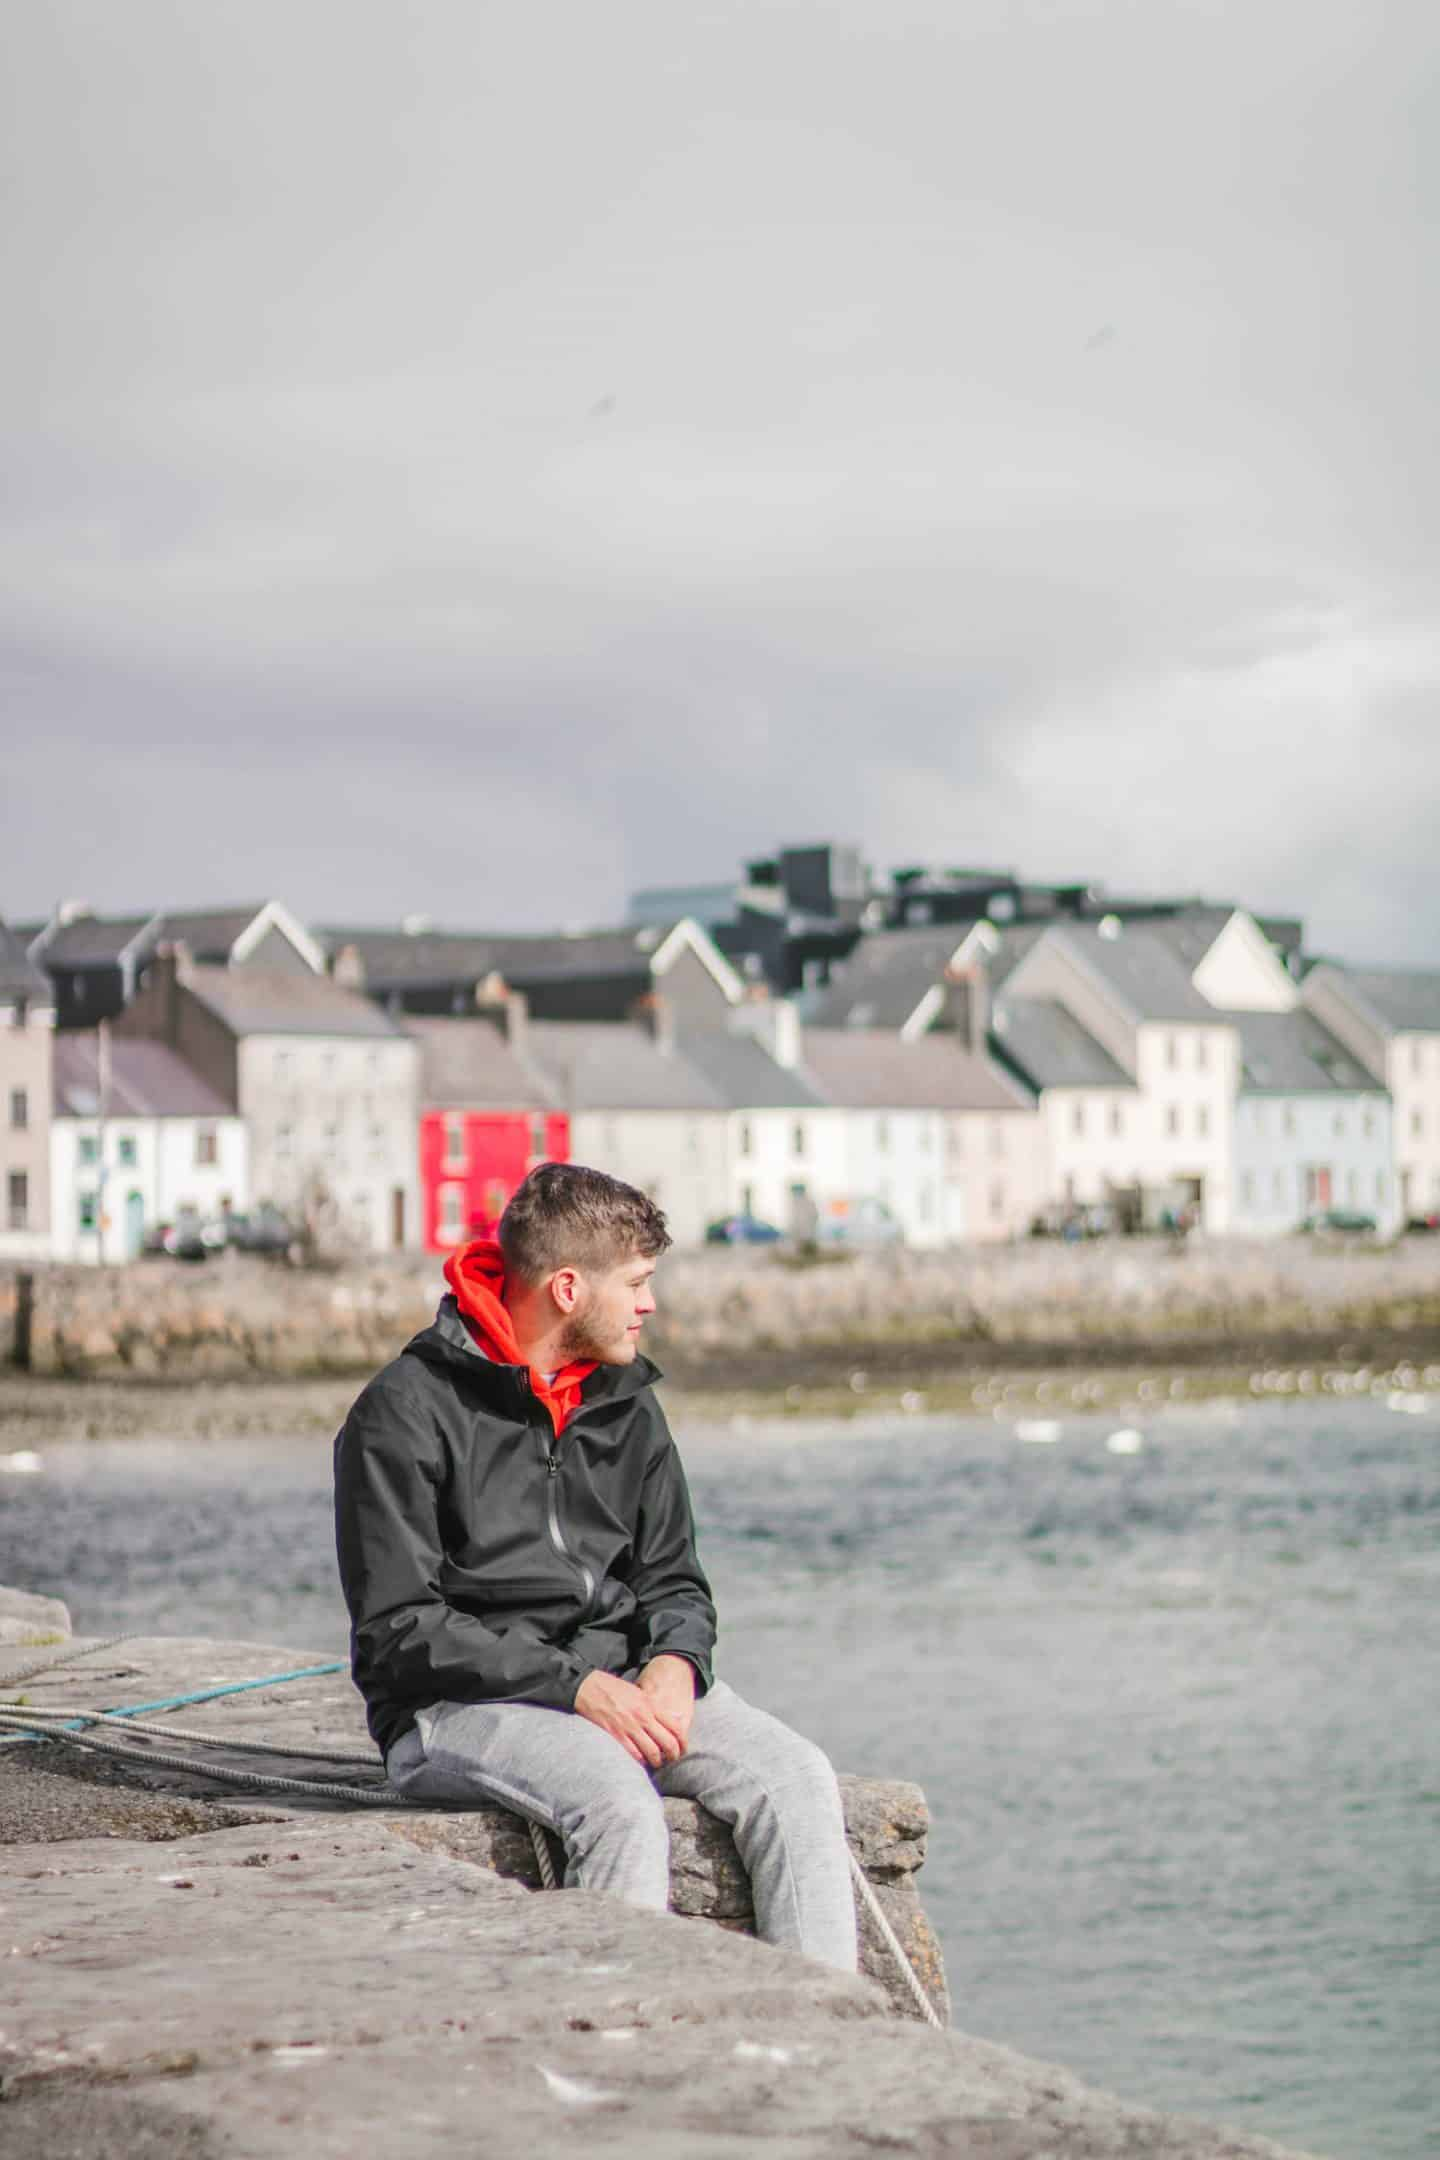 Galway is one of the coolest cities for your Ireland road trip